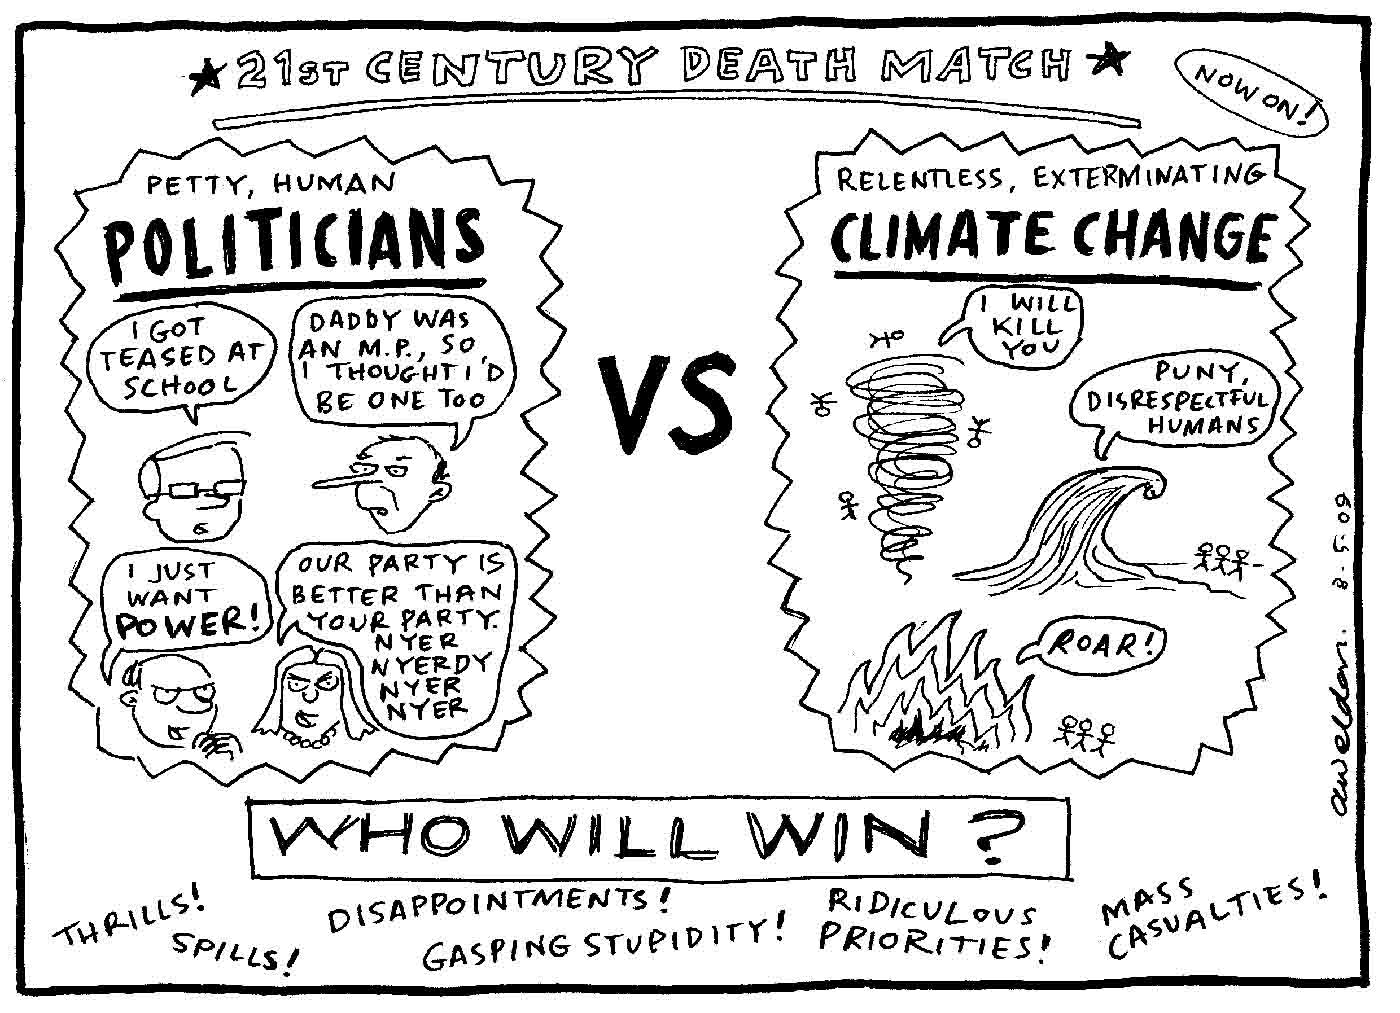 A black and white promotional poster for the '21st century death match', showing 'Petty, human POLITICIANS' vs. 'Relentless, exterminating CLIMATE CHANGE'. Four caricatured politicians say 'I got teased at school', 'Daddy was an M.P., so I though I'd be one too', 'I just want power!' and 'Our party is better than your party. Nyer, Nyerdy, Nyer Nyer'. On the other side, extreme weather conditions say 'I will kill you', 'Puny, disrespectful humans' and 'Roar'. The poster asks 'Who will win?' and promises 'Thrills! Spills! Disappointments! Gasping Stupidity! Ridiculous Priorities! and Mass Casualties!'  - click to view larger image